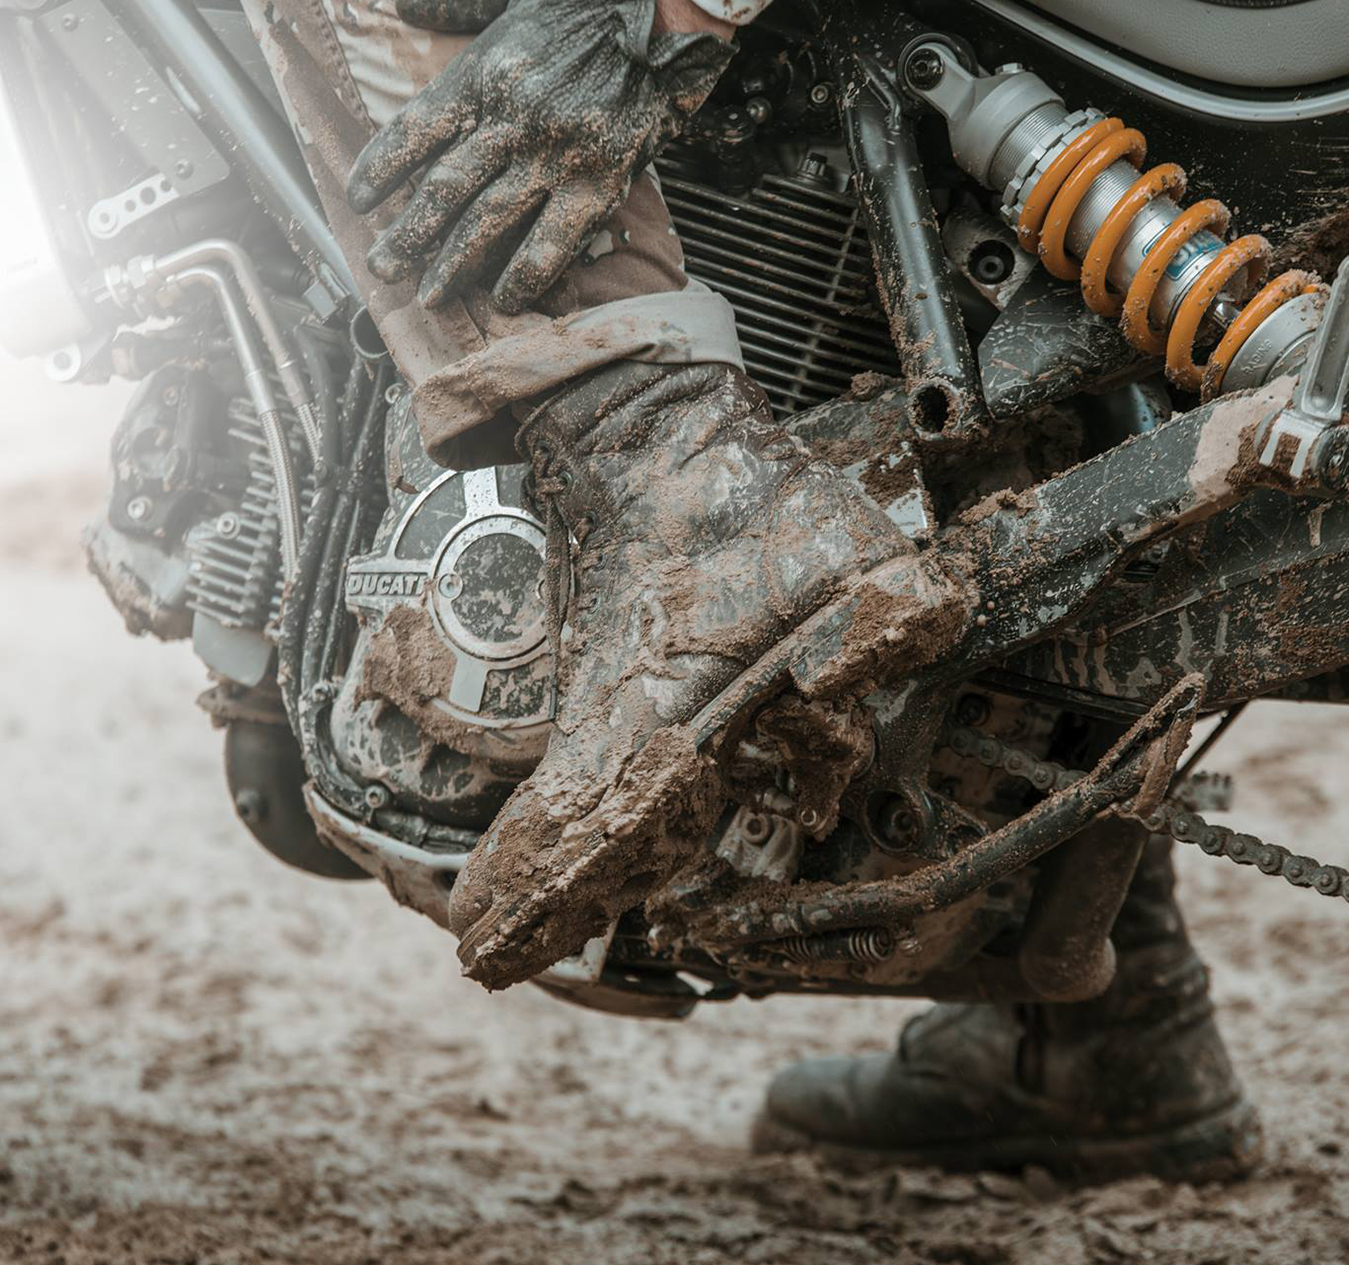 How to waterproof and clean motorcycle boots if It rain